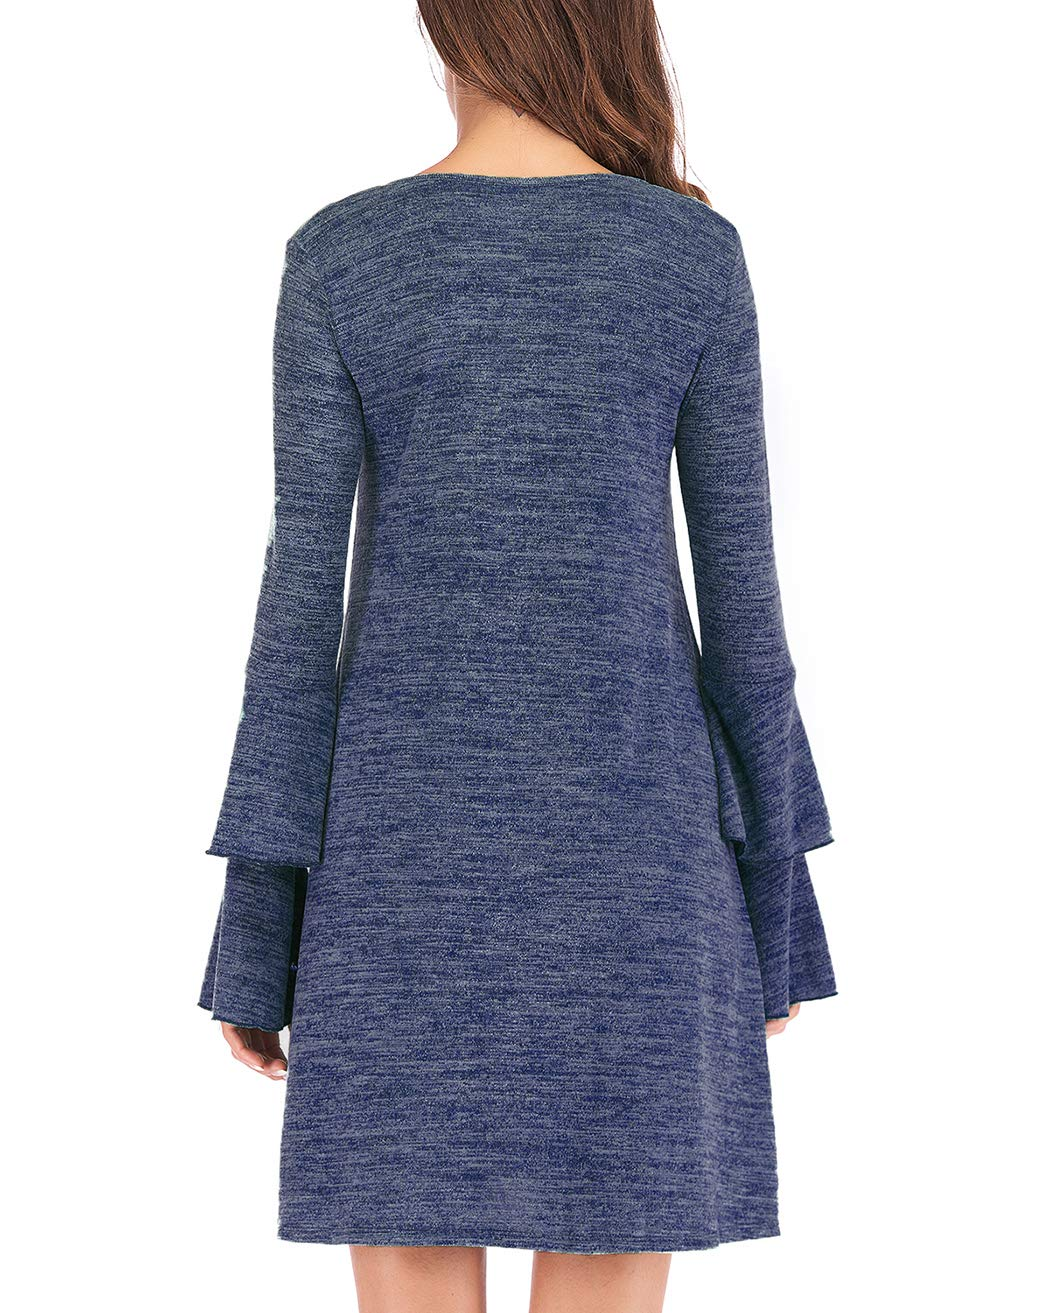 Eanklosco Women's Sweater Dress Flare Long Sleeve Knit Jumper Tops Criss Cross V Neck Loose Swing Tunic Dress (Blue, M)